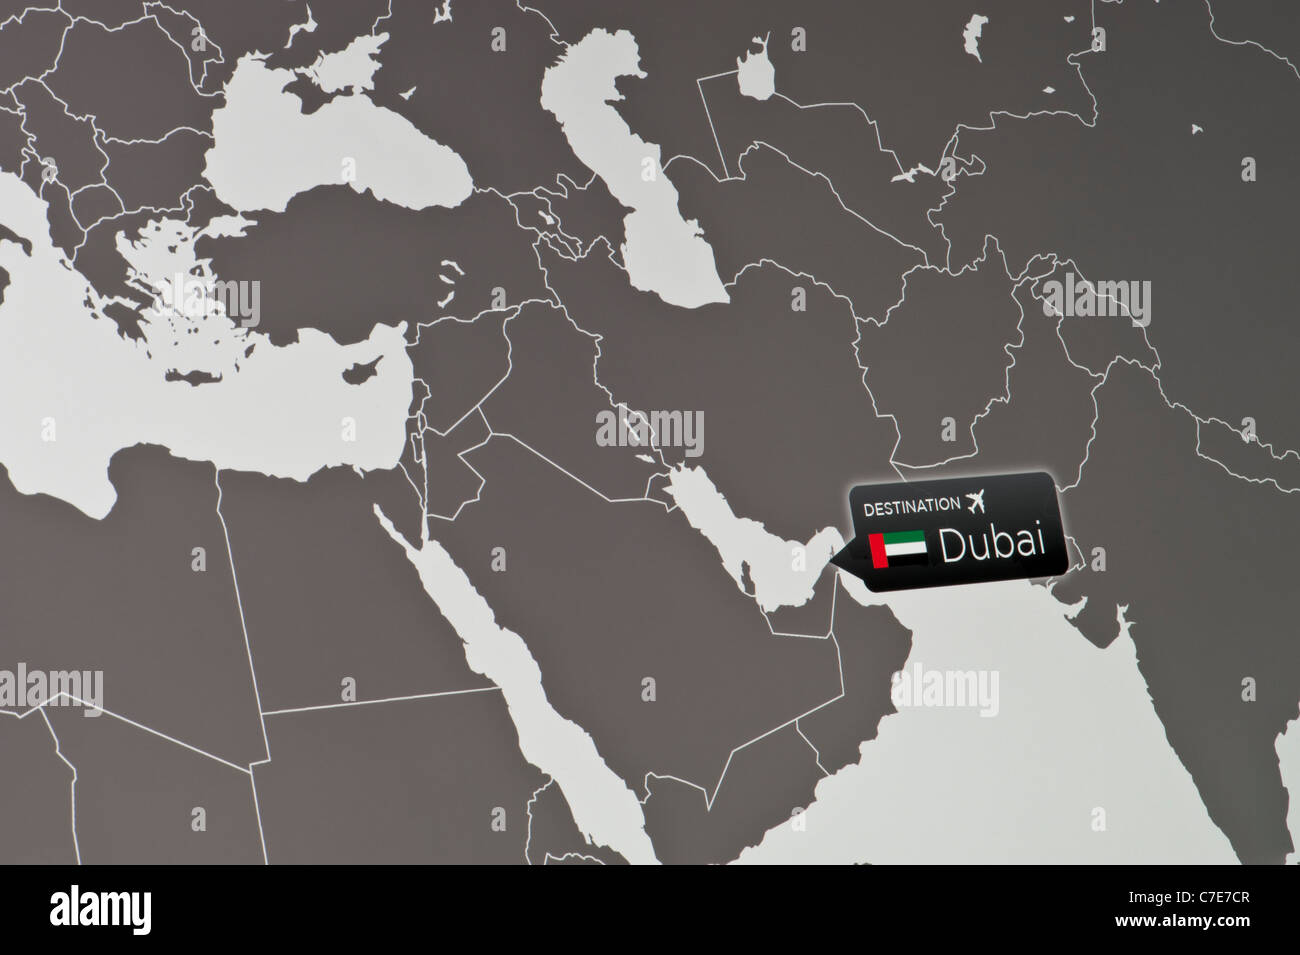 A close-up of a computer display indicating the location of Dubai International Airport, United Arab Emirates. - Stock Image